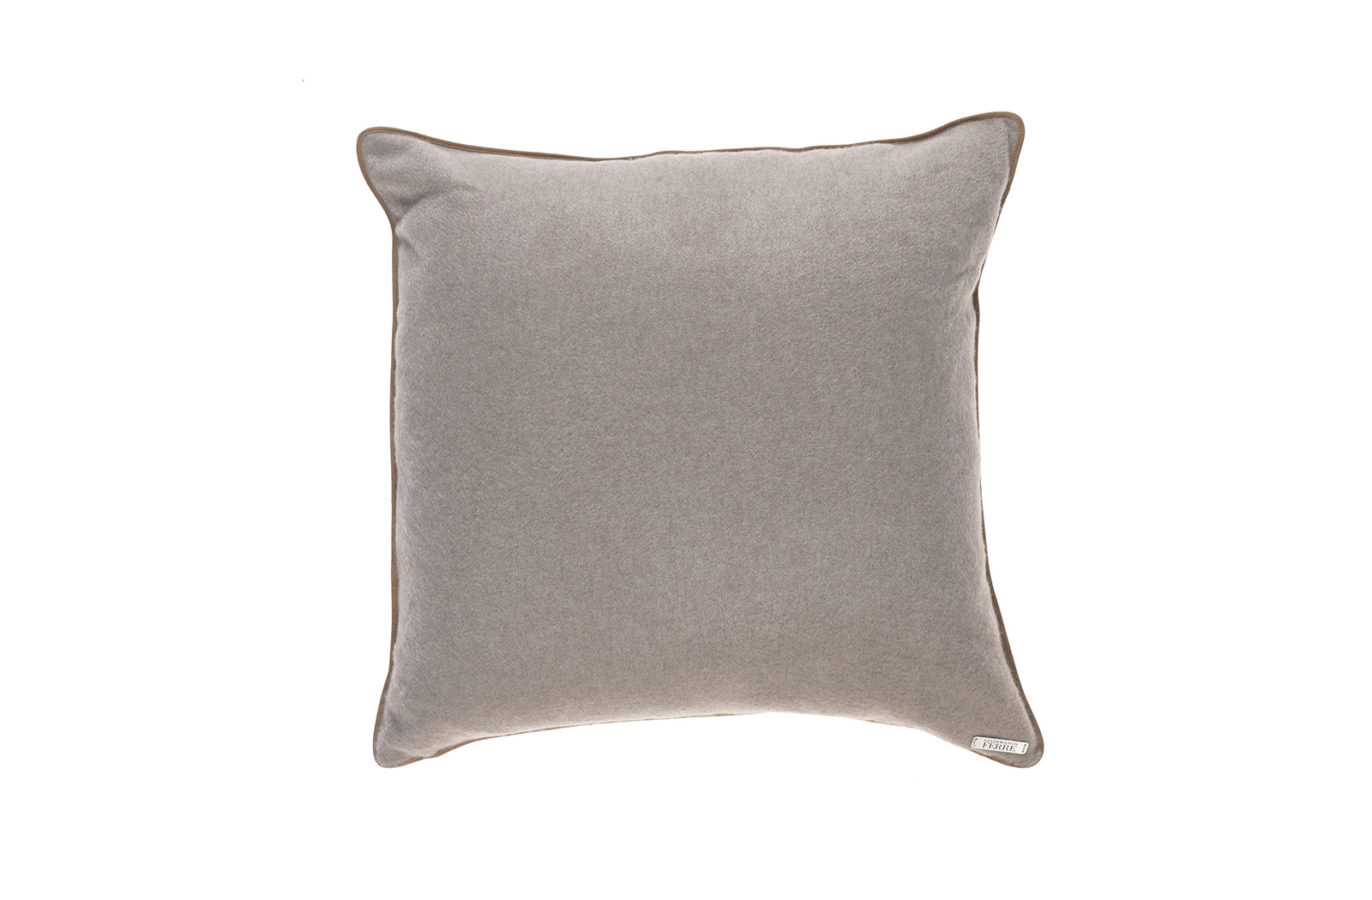 Gianfranco Ferre Home Tessa Cushion 01